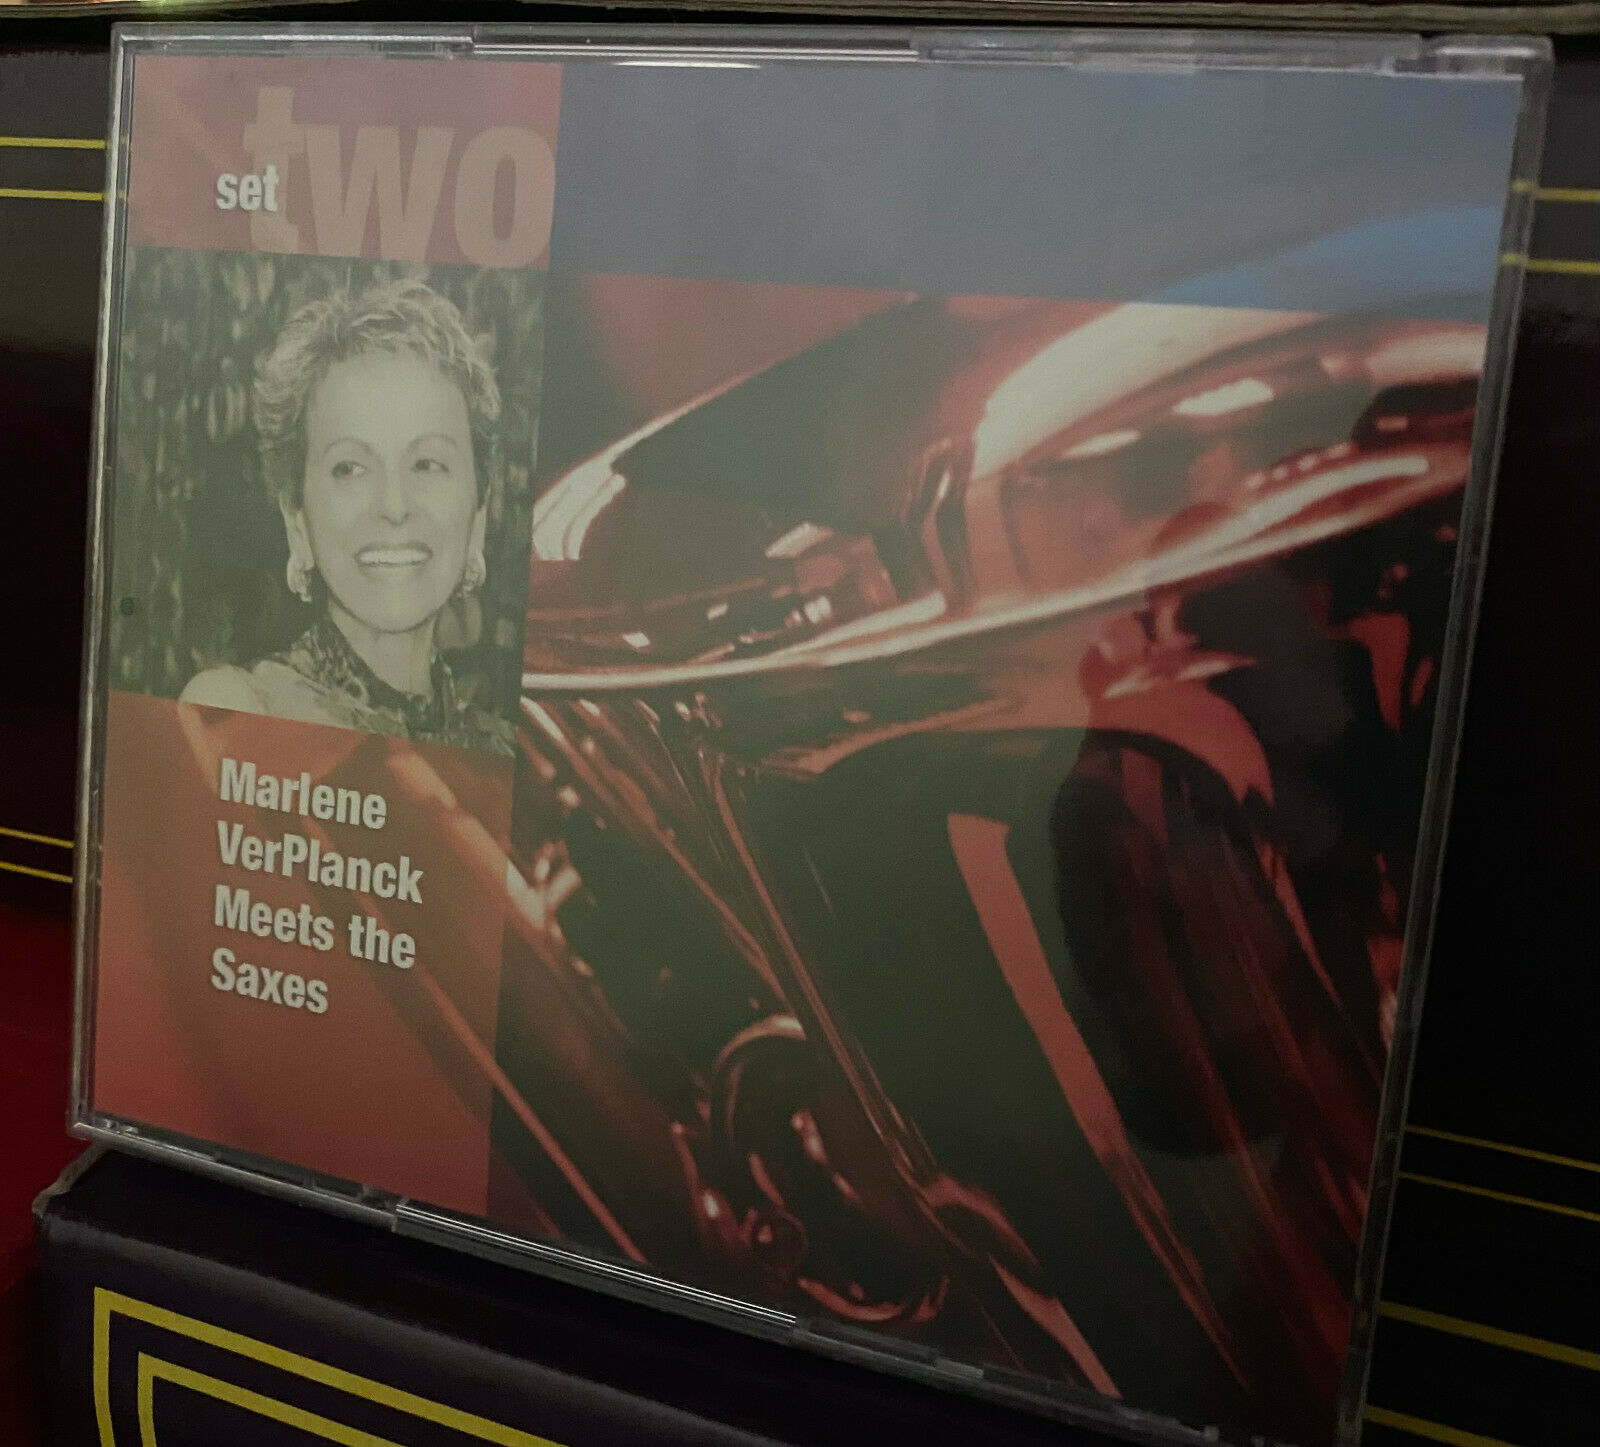 Marlene VerPlanck Meets The Saxes - Rare Privately Produced Concert Recording - $33.00